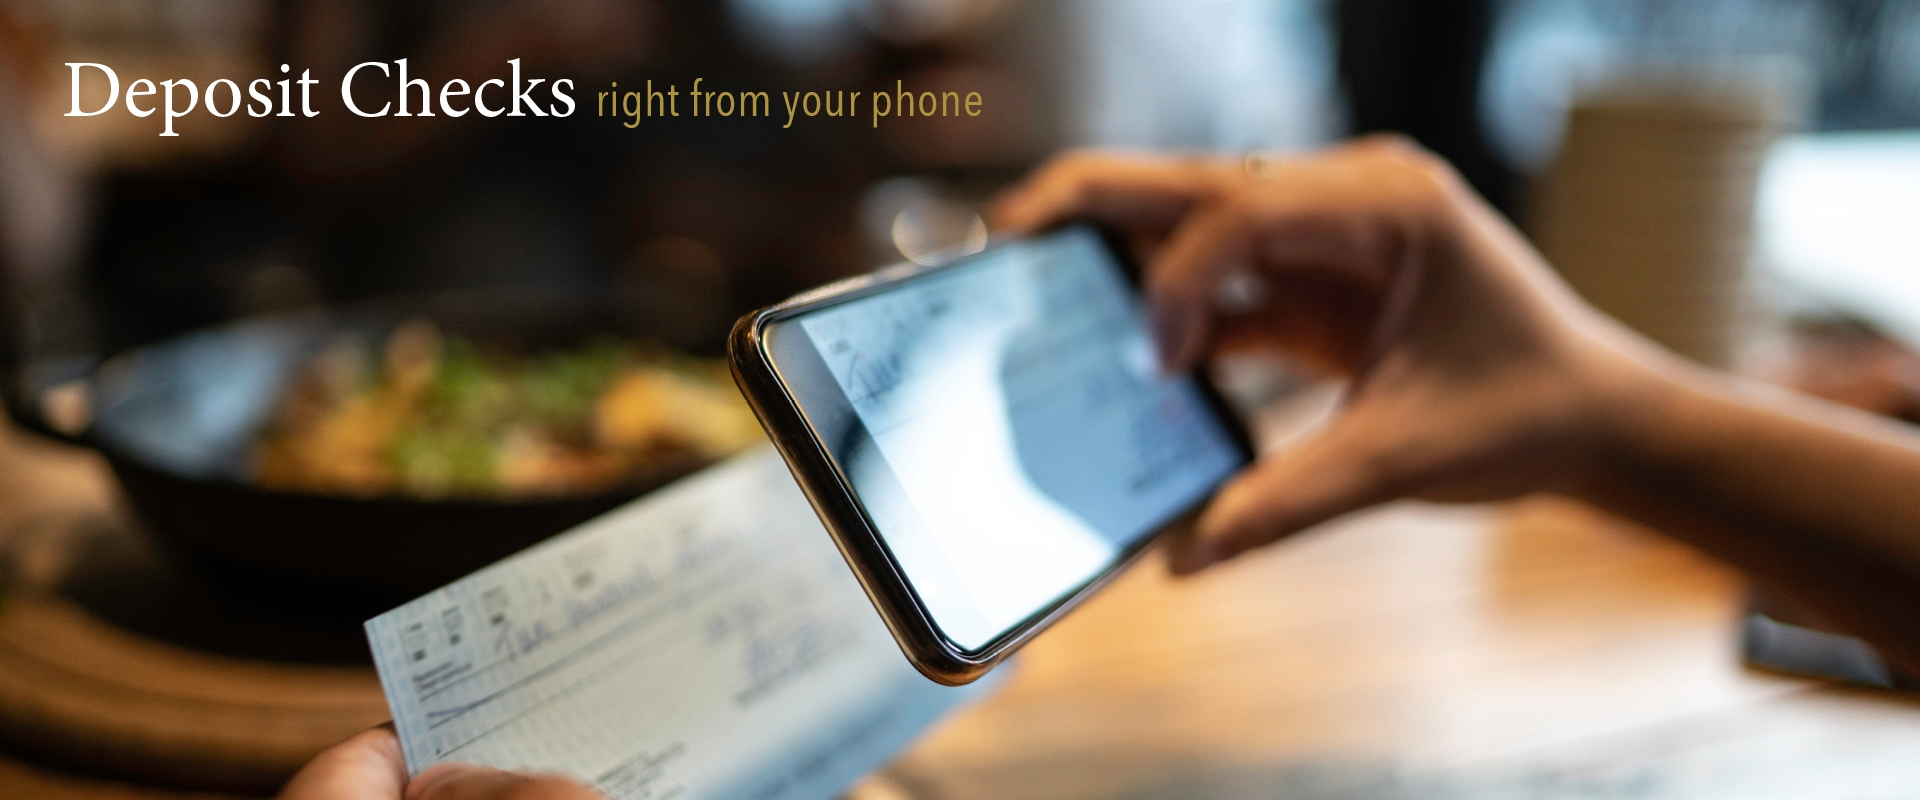 Deposit checks right from your phone Banner